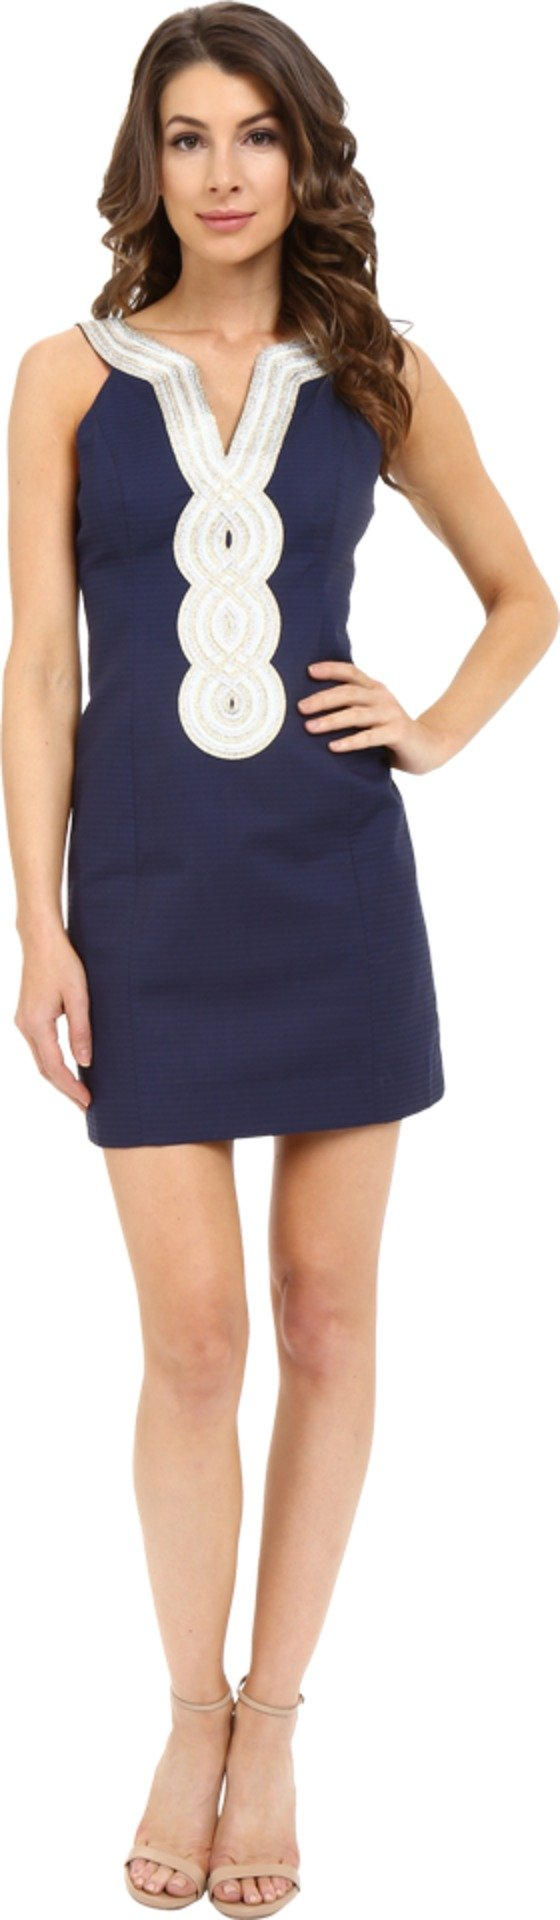 625990184444e Lilly Pulitzer Shift Dress Size 0 Top Deals   Lowest Price ...